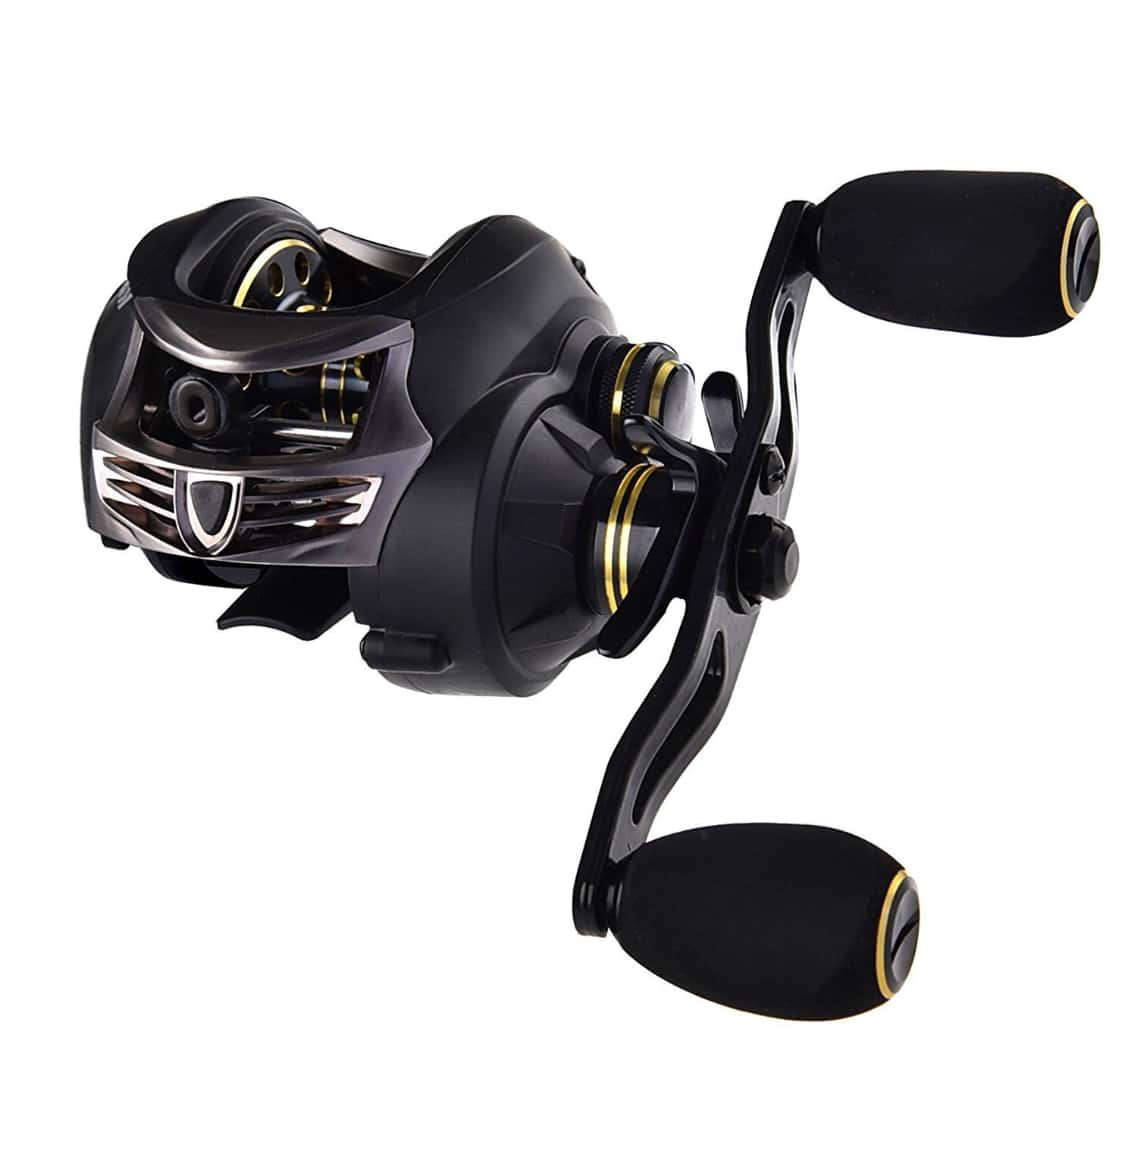 Bait Casting Fishing Reel $42.73 @ Amazon + FS